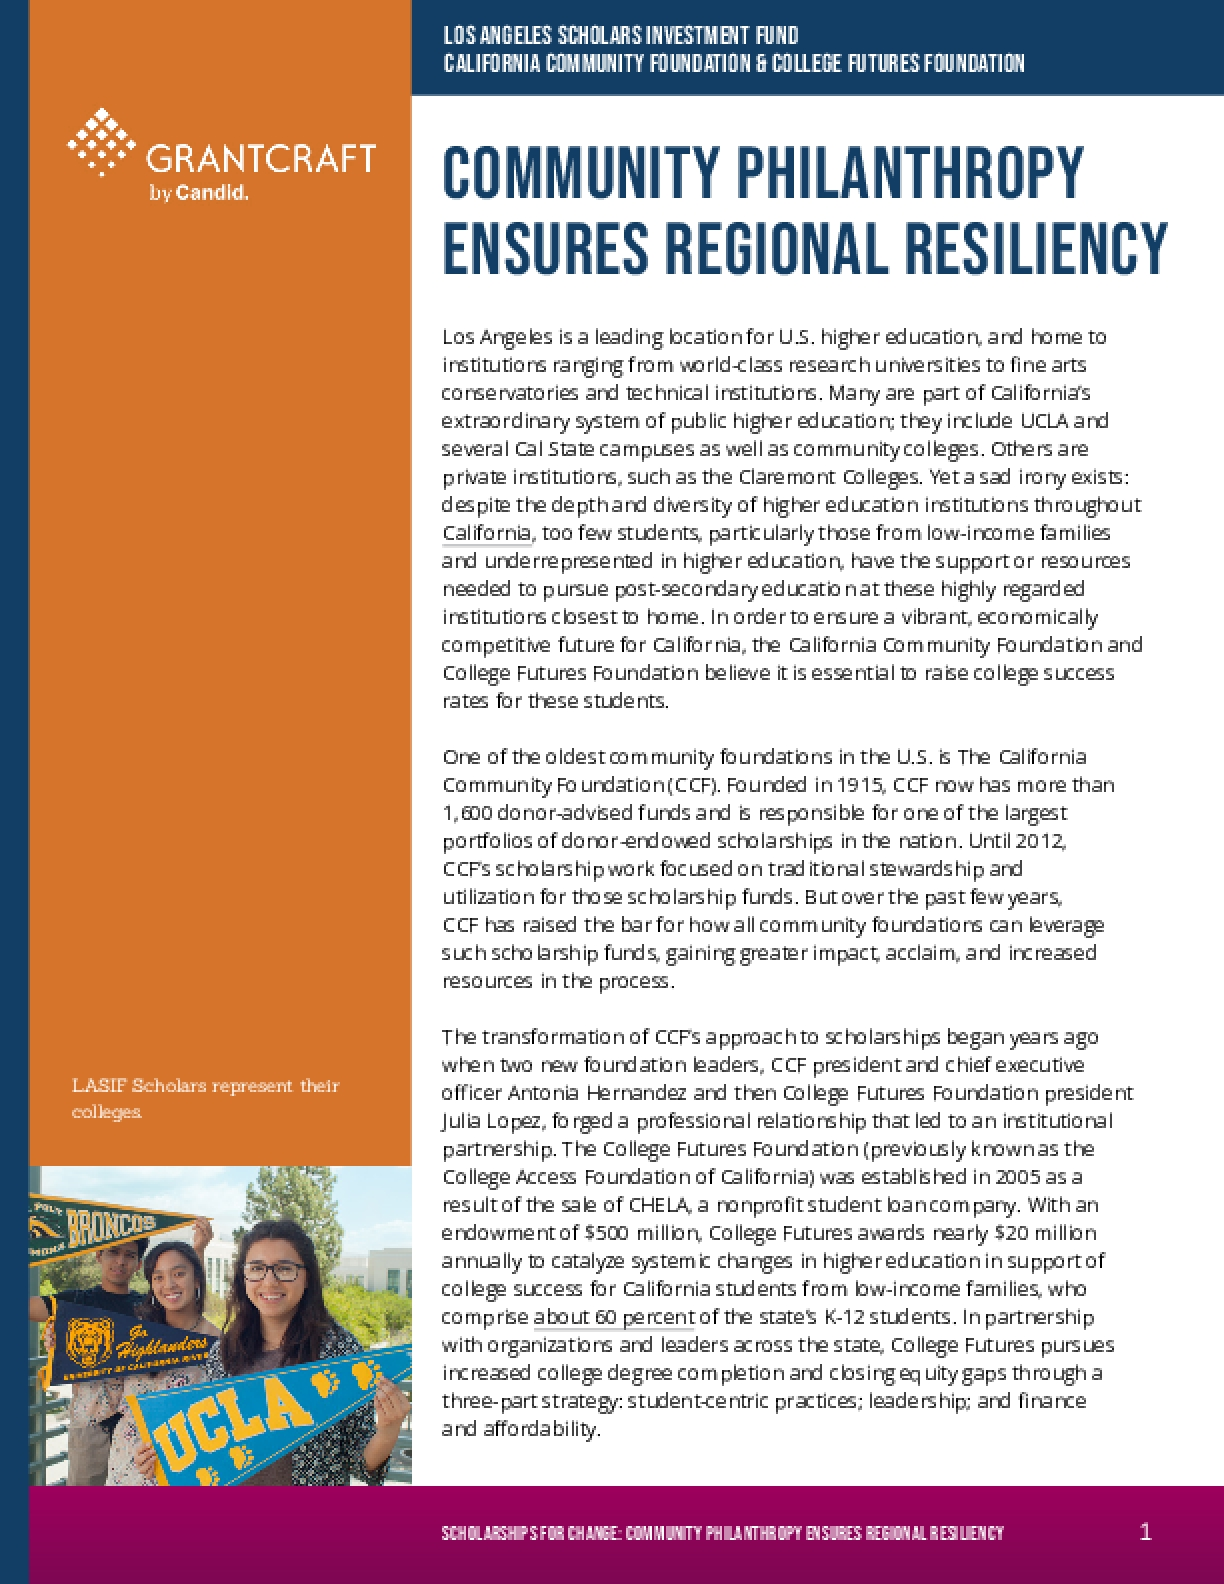 Community Philanthropy Ensures Regional Resiliency